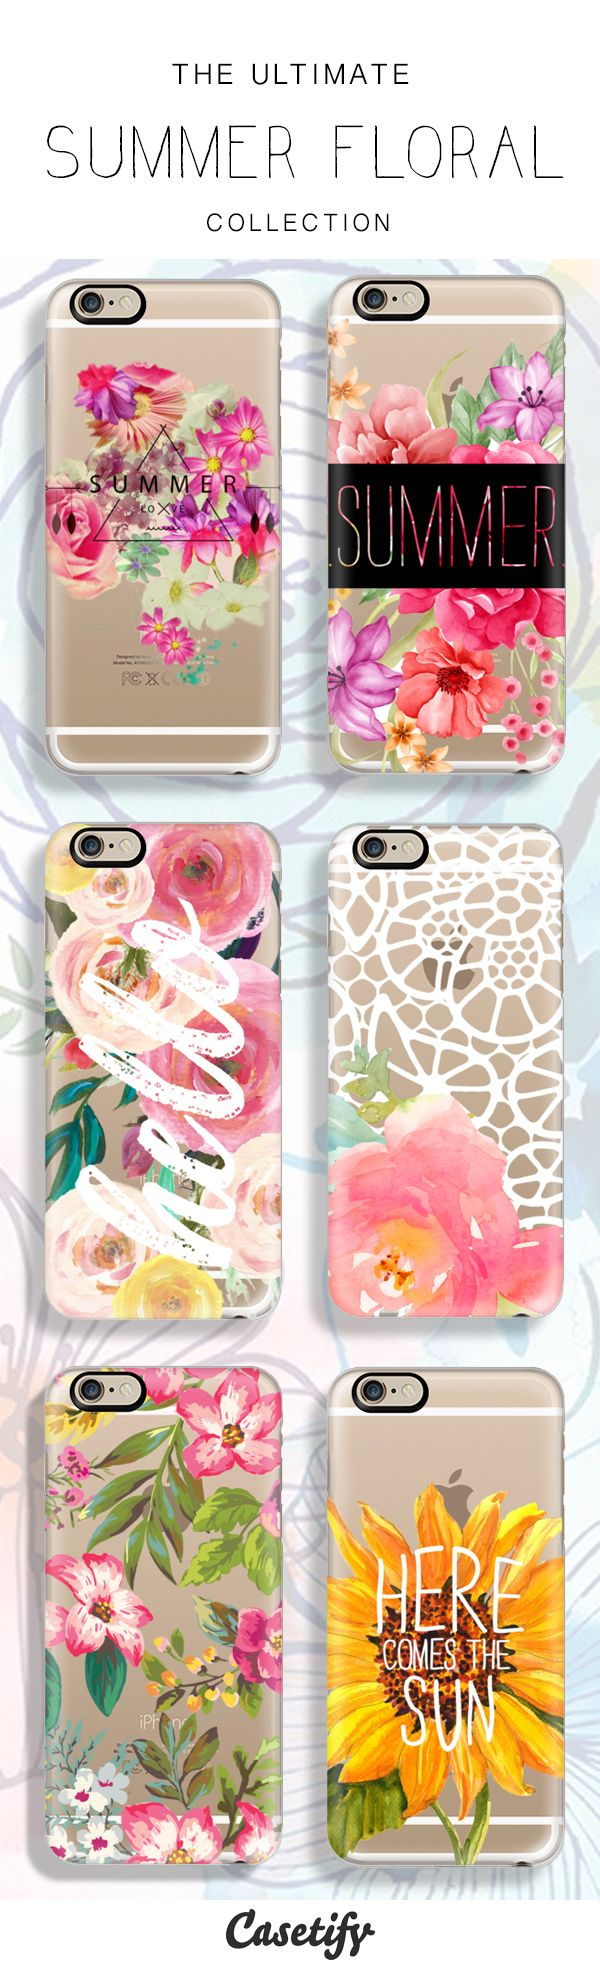 Live it up this summer with our ultimate Summer Collection. Check these gorgeous floral designs here: http://goo.gl/hoLkeM